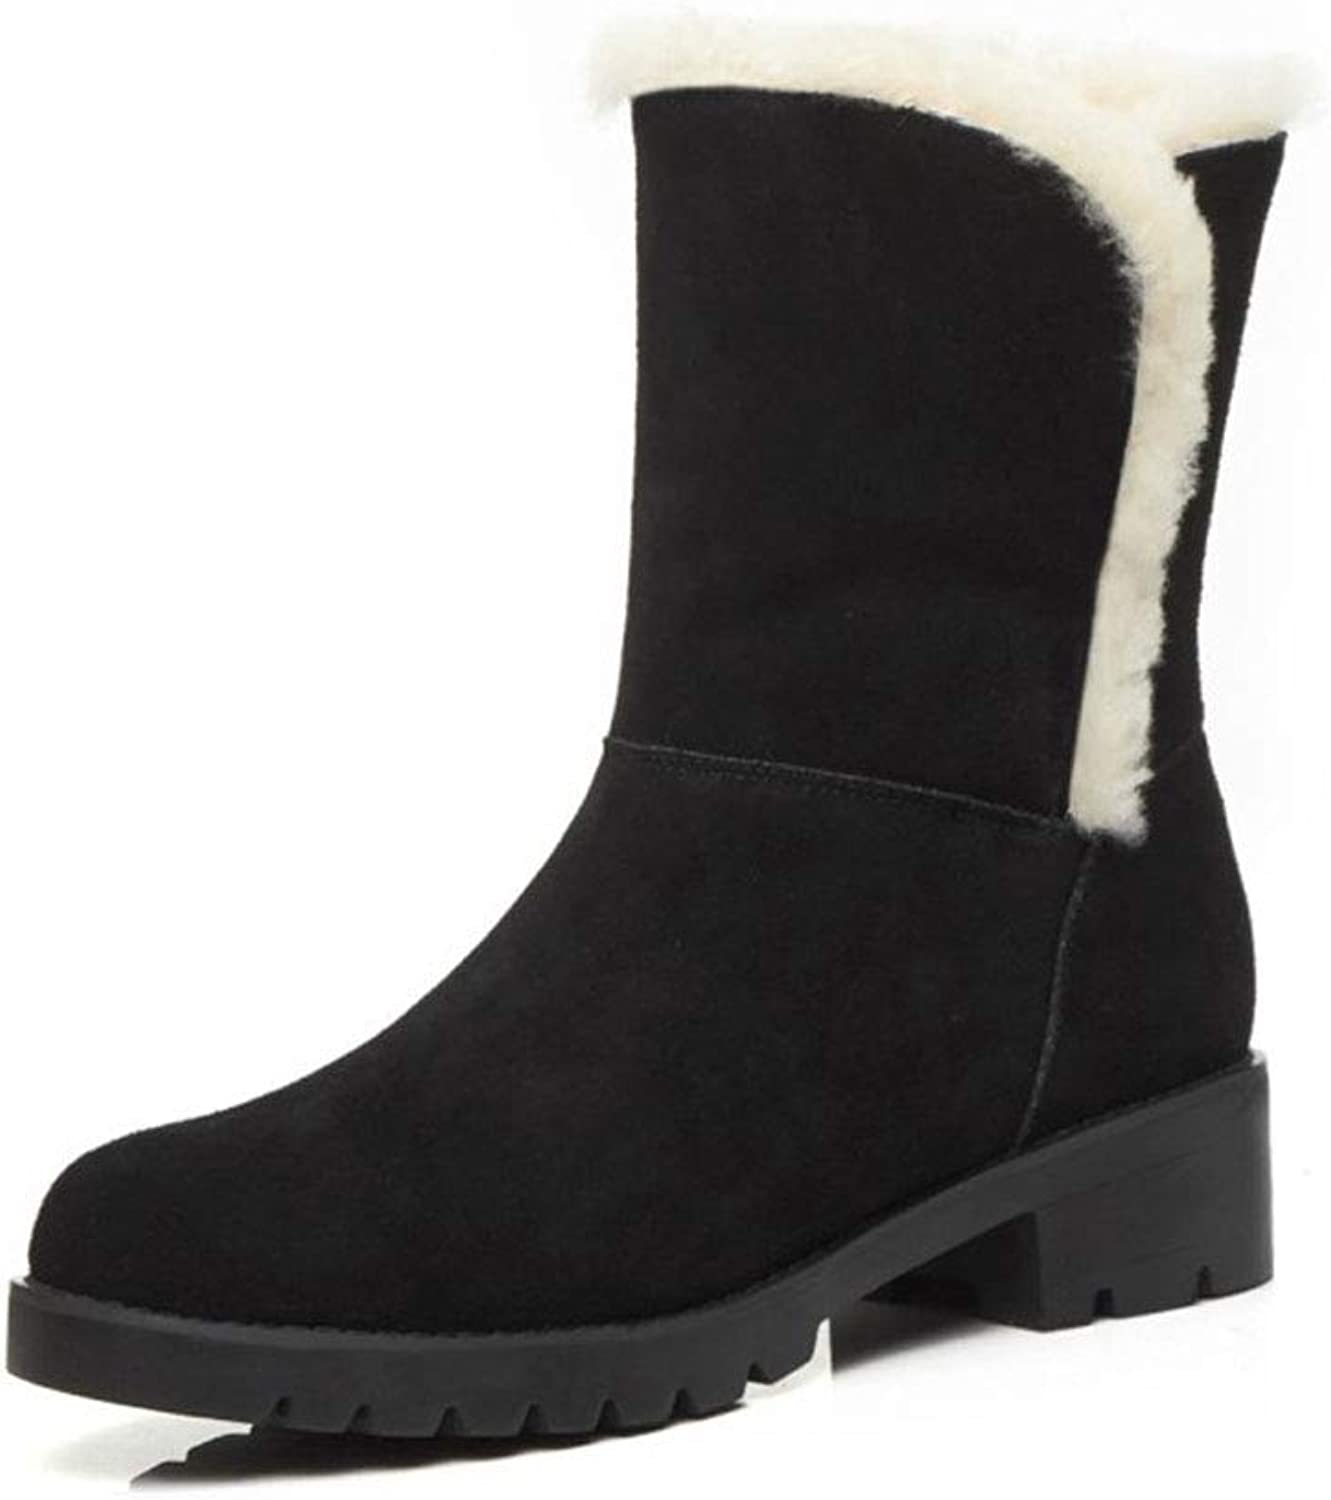 Women's Snow Boots Winter Suede Platform Boots Ladies Boots Warm Cotton shoes Outdoor High-top Casual shoes Comfort Loafers (color   Black, Size   37)